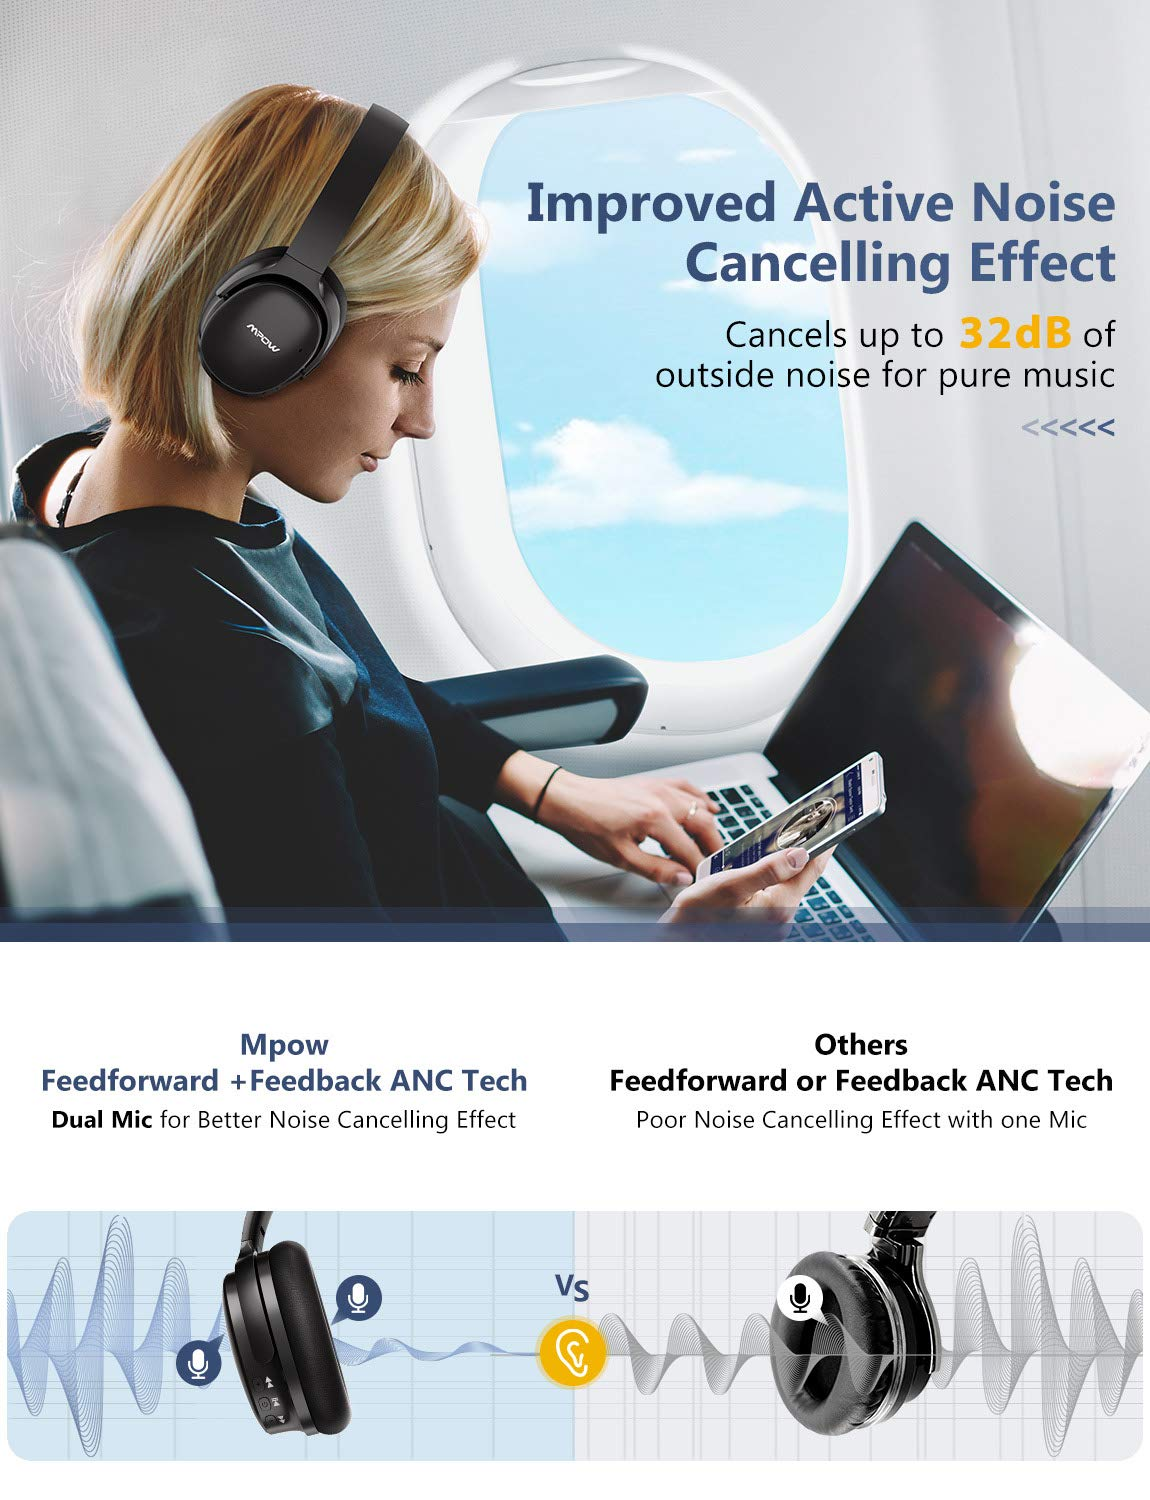 Mpow H10 [2019 Edition] Dual-Mic Active Noise Cancelling Bluetooth Headphones, ANC Over-Ear Wireless Headphones with CVC 6.0 Microphone, Hi-Fi Deep Bass, Foldable Headset for Travel/Work by Mpow (Image #2)